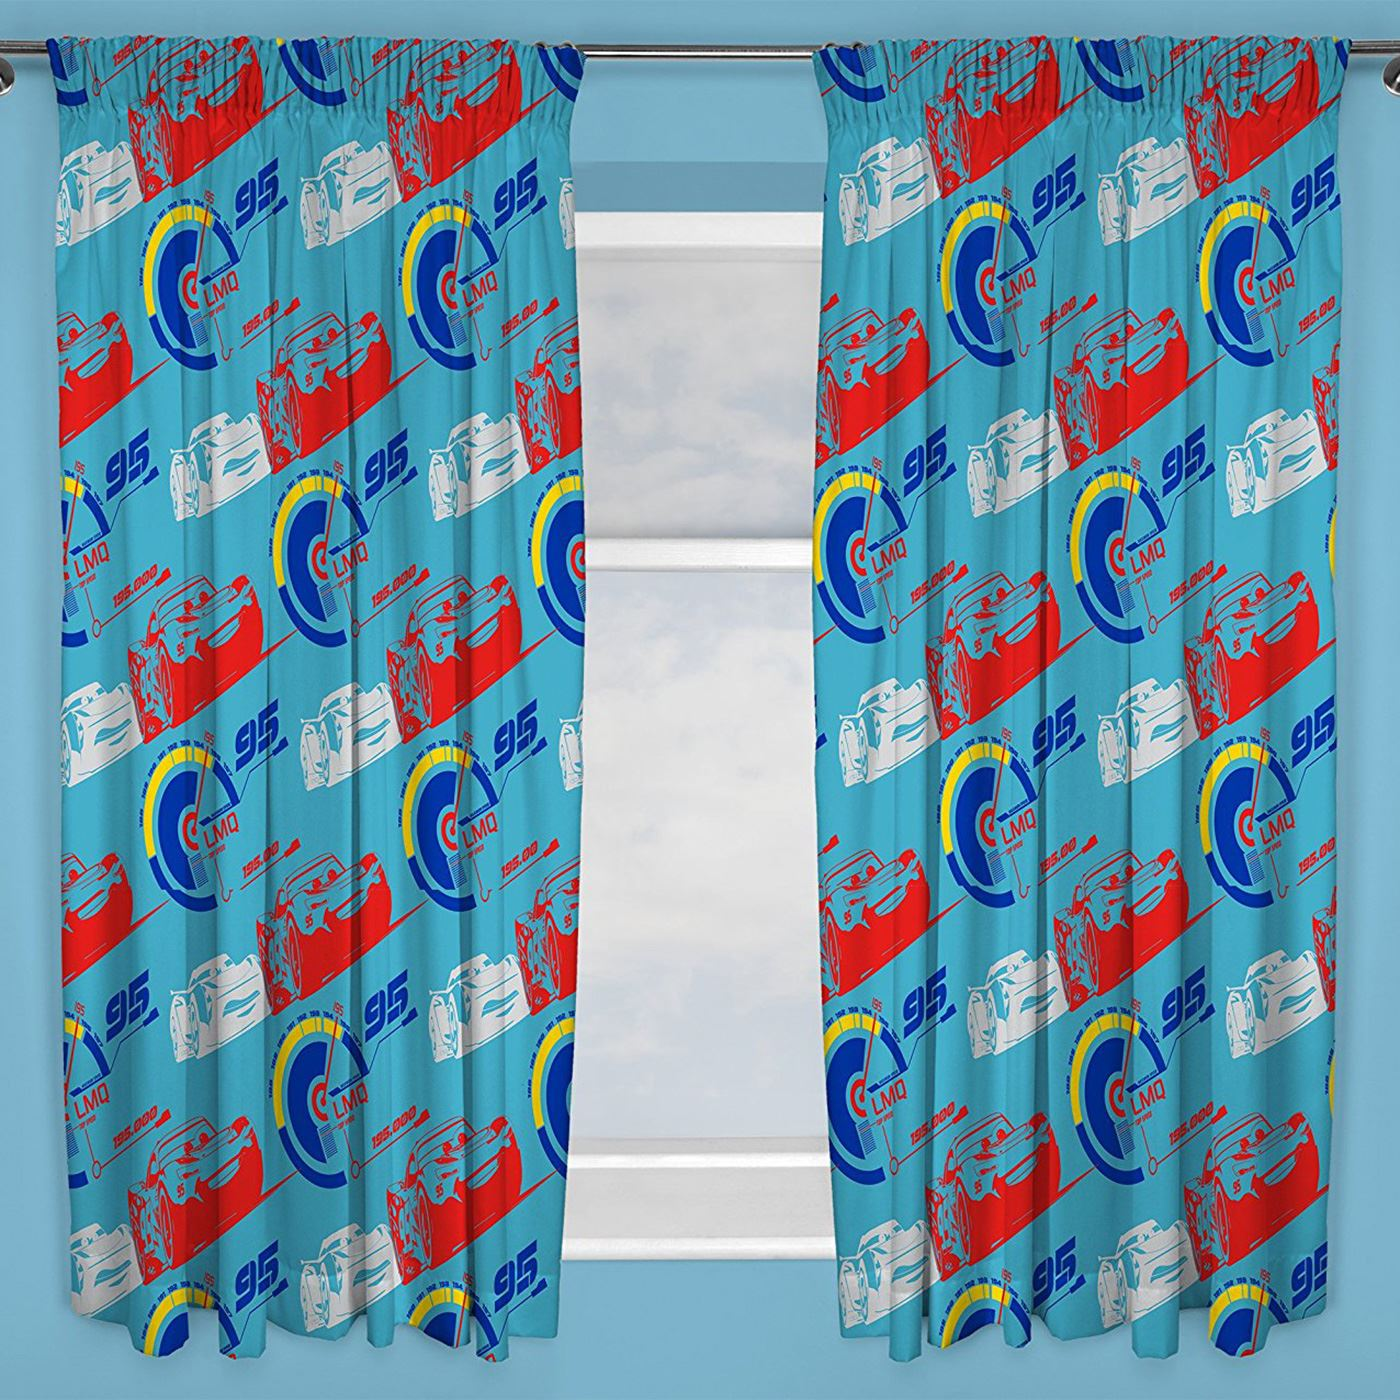 cast for designs design room bedroom boys curtain curtains eyes kids